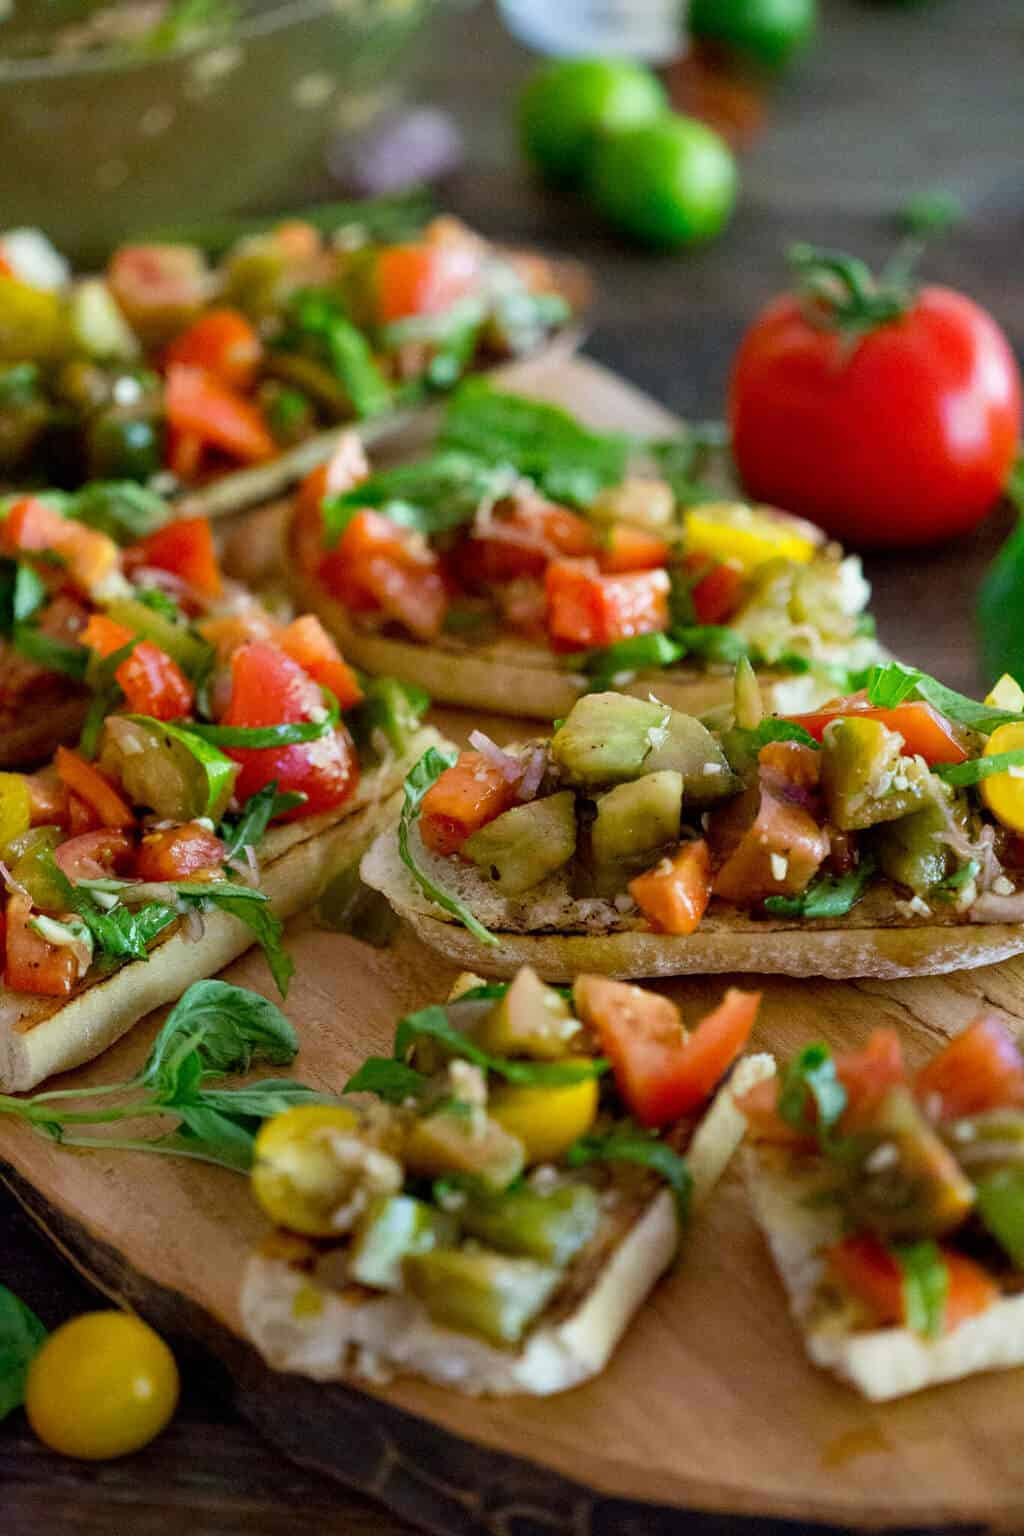 A photo of Heriloom Tomato Bruschetta on a wooden serving board.